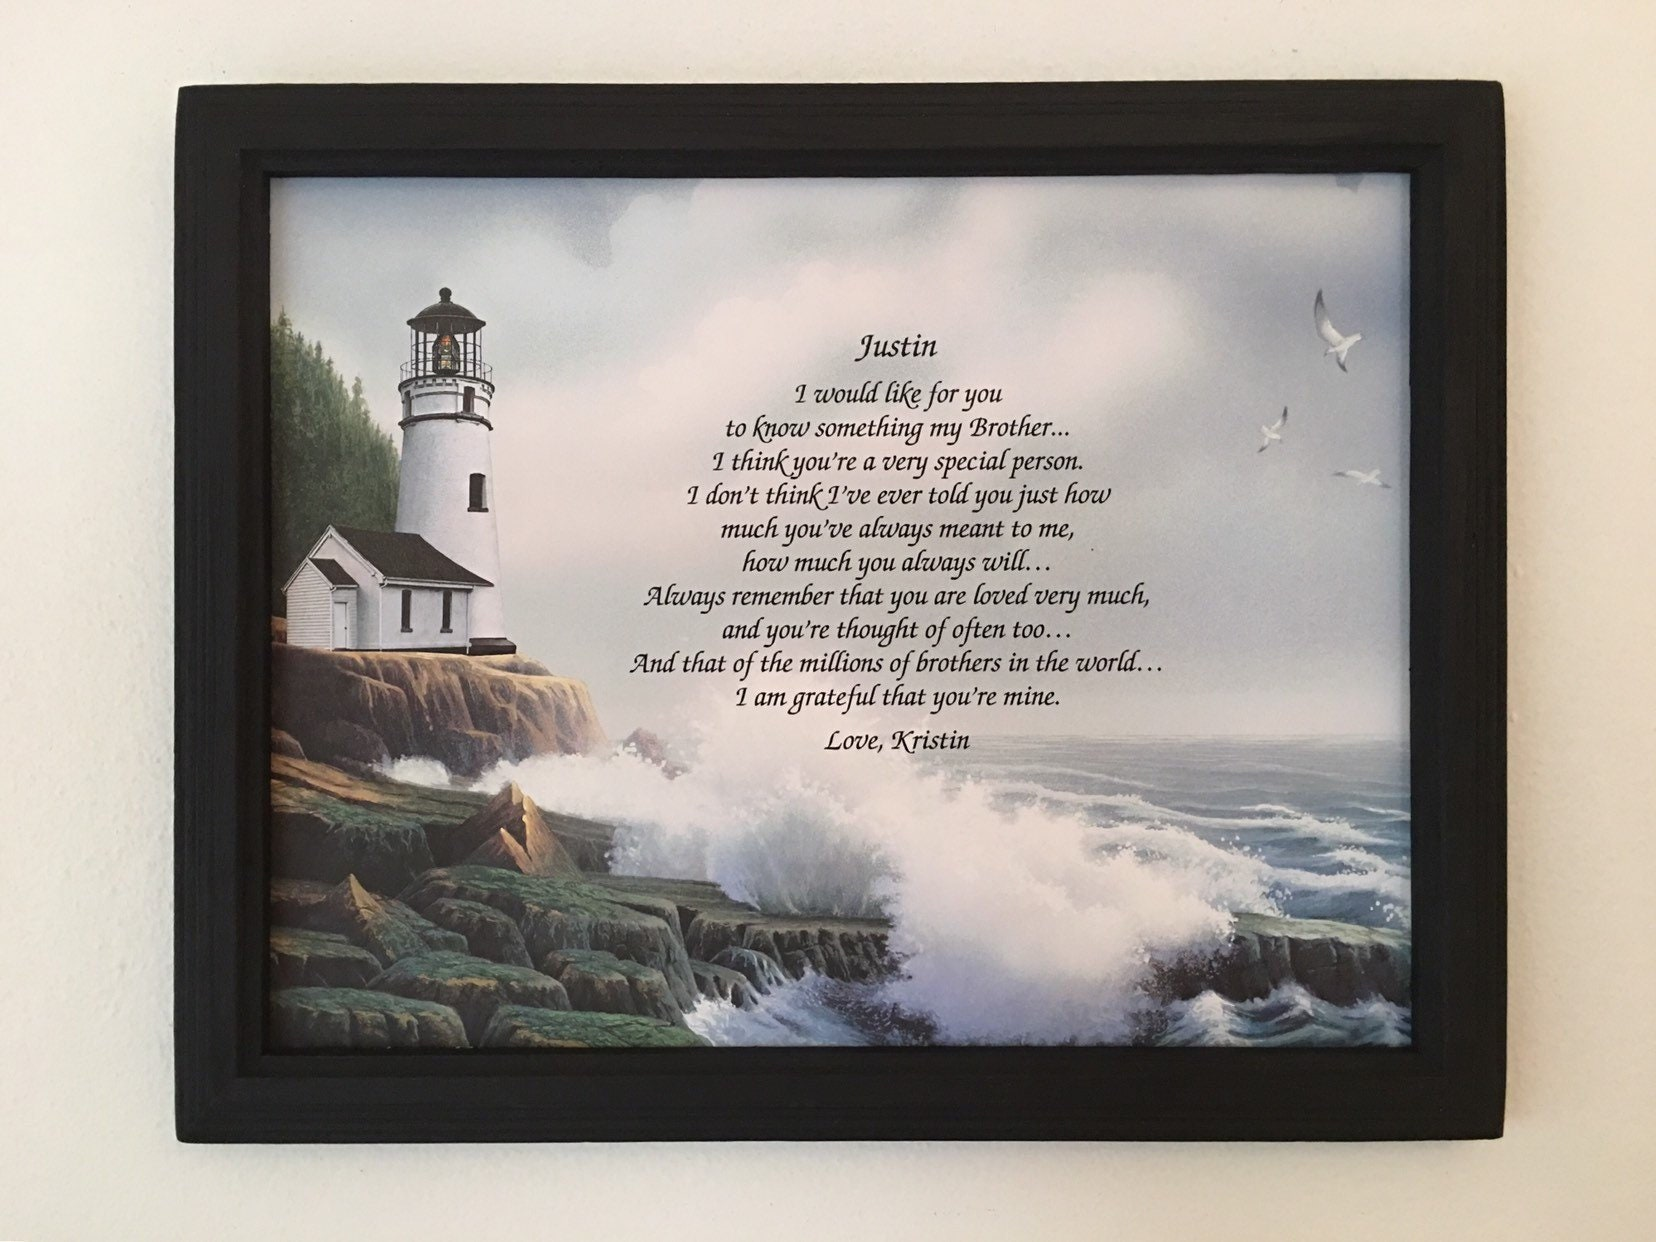 Birthday Gift For Brother Gifts Personalized Poem Frame Included From Sister